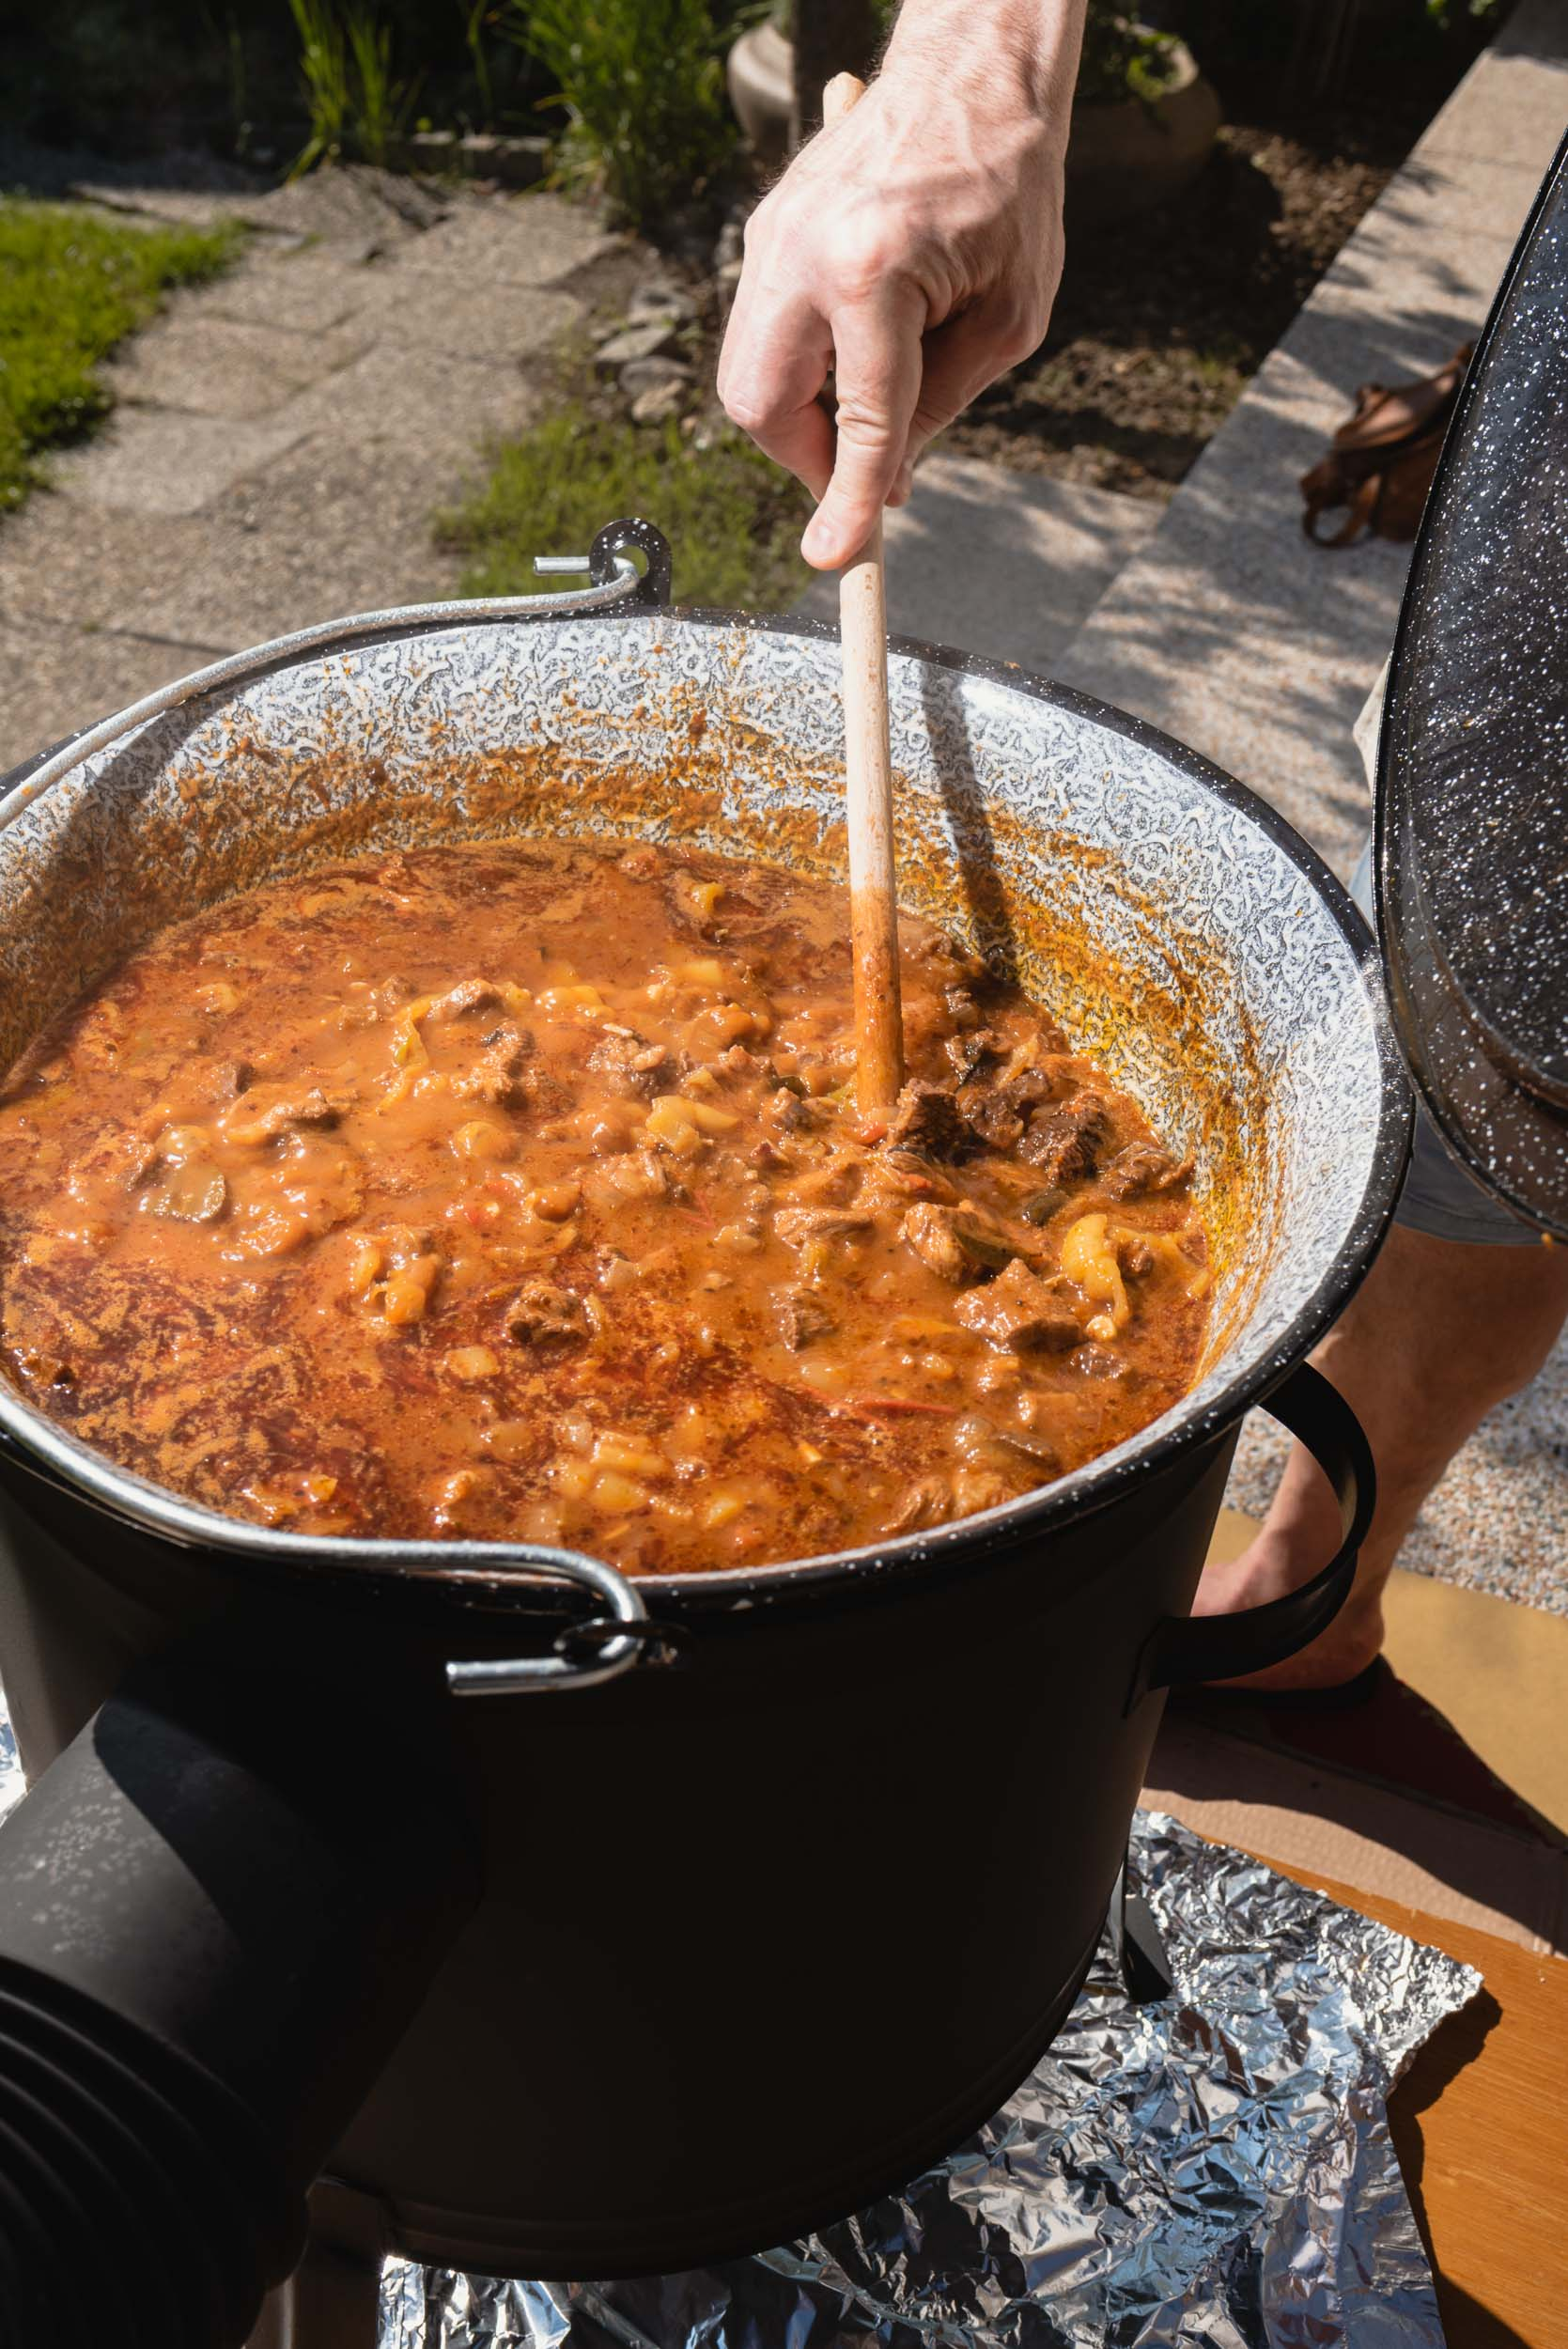 Slovak food goulash cooking outside